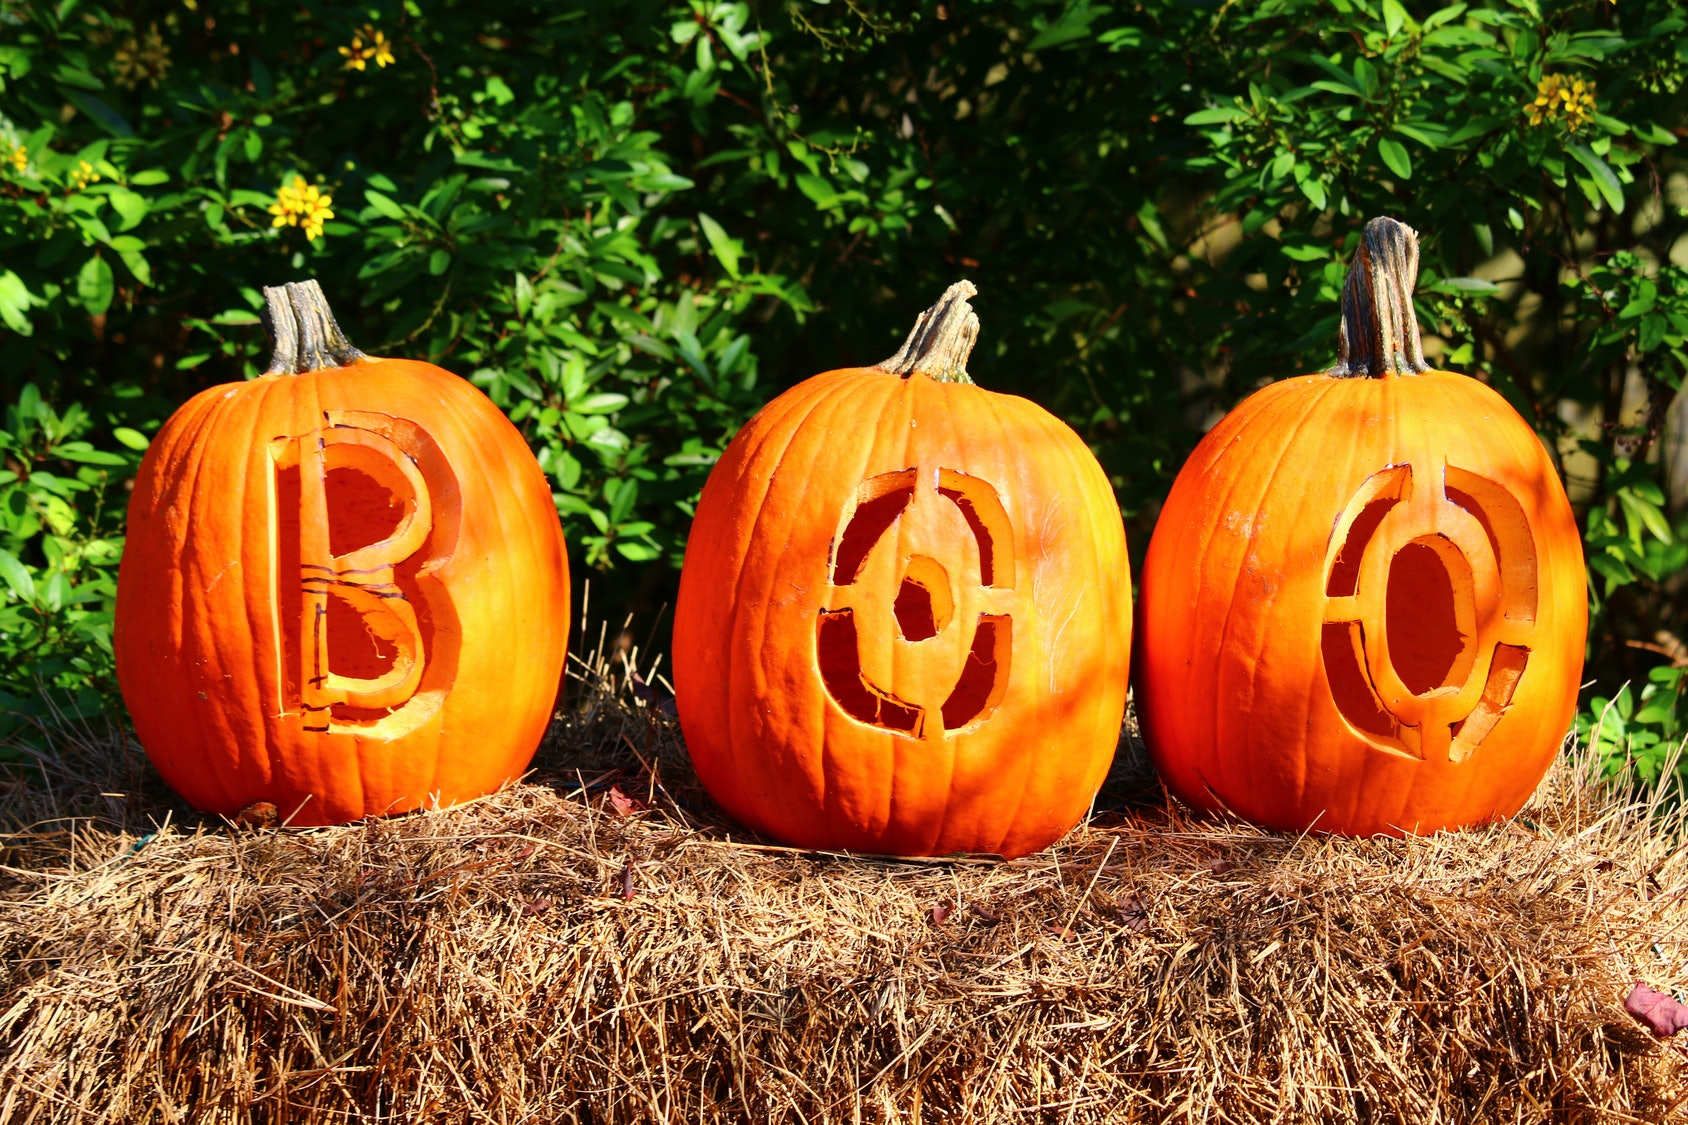 Creative pumpkin carving ideas for halloween that are not